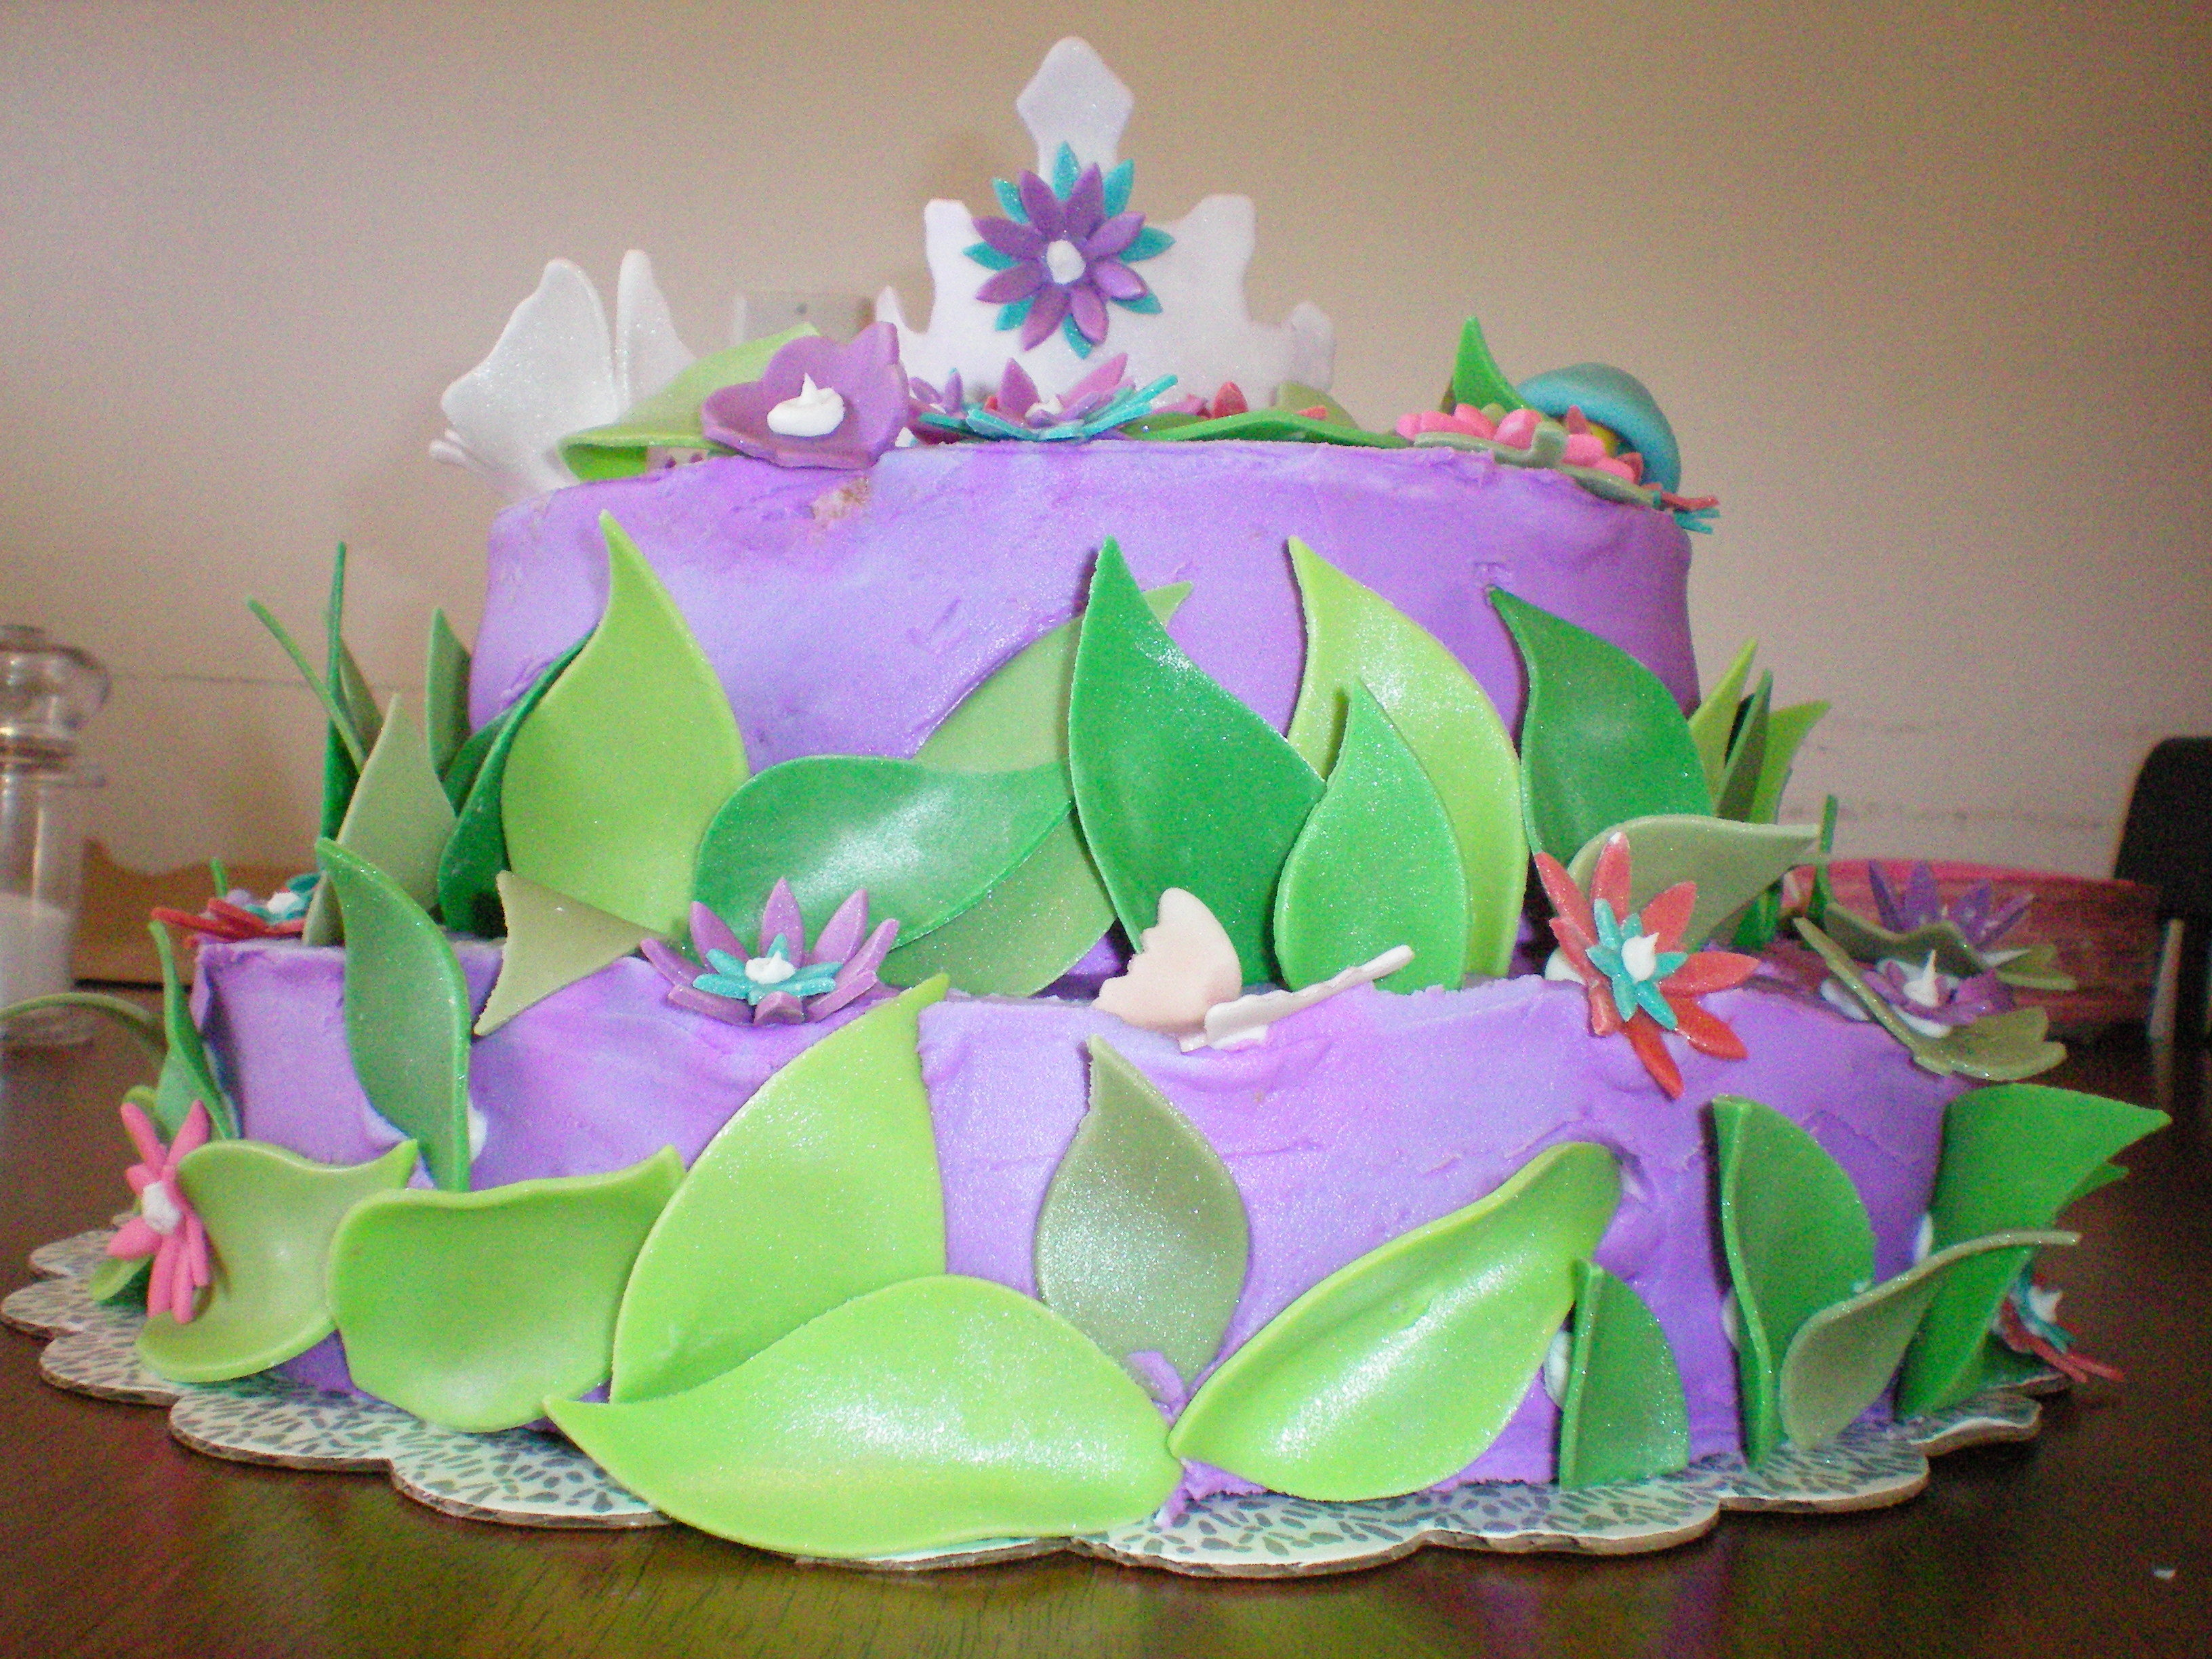 Cakes, pink, red, purple, blue, green, cake, Dolled-up cakes by lissette